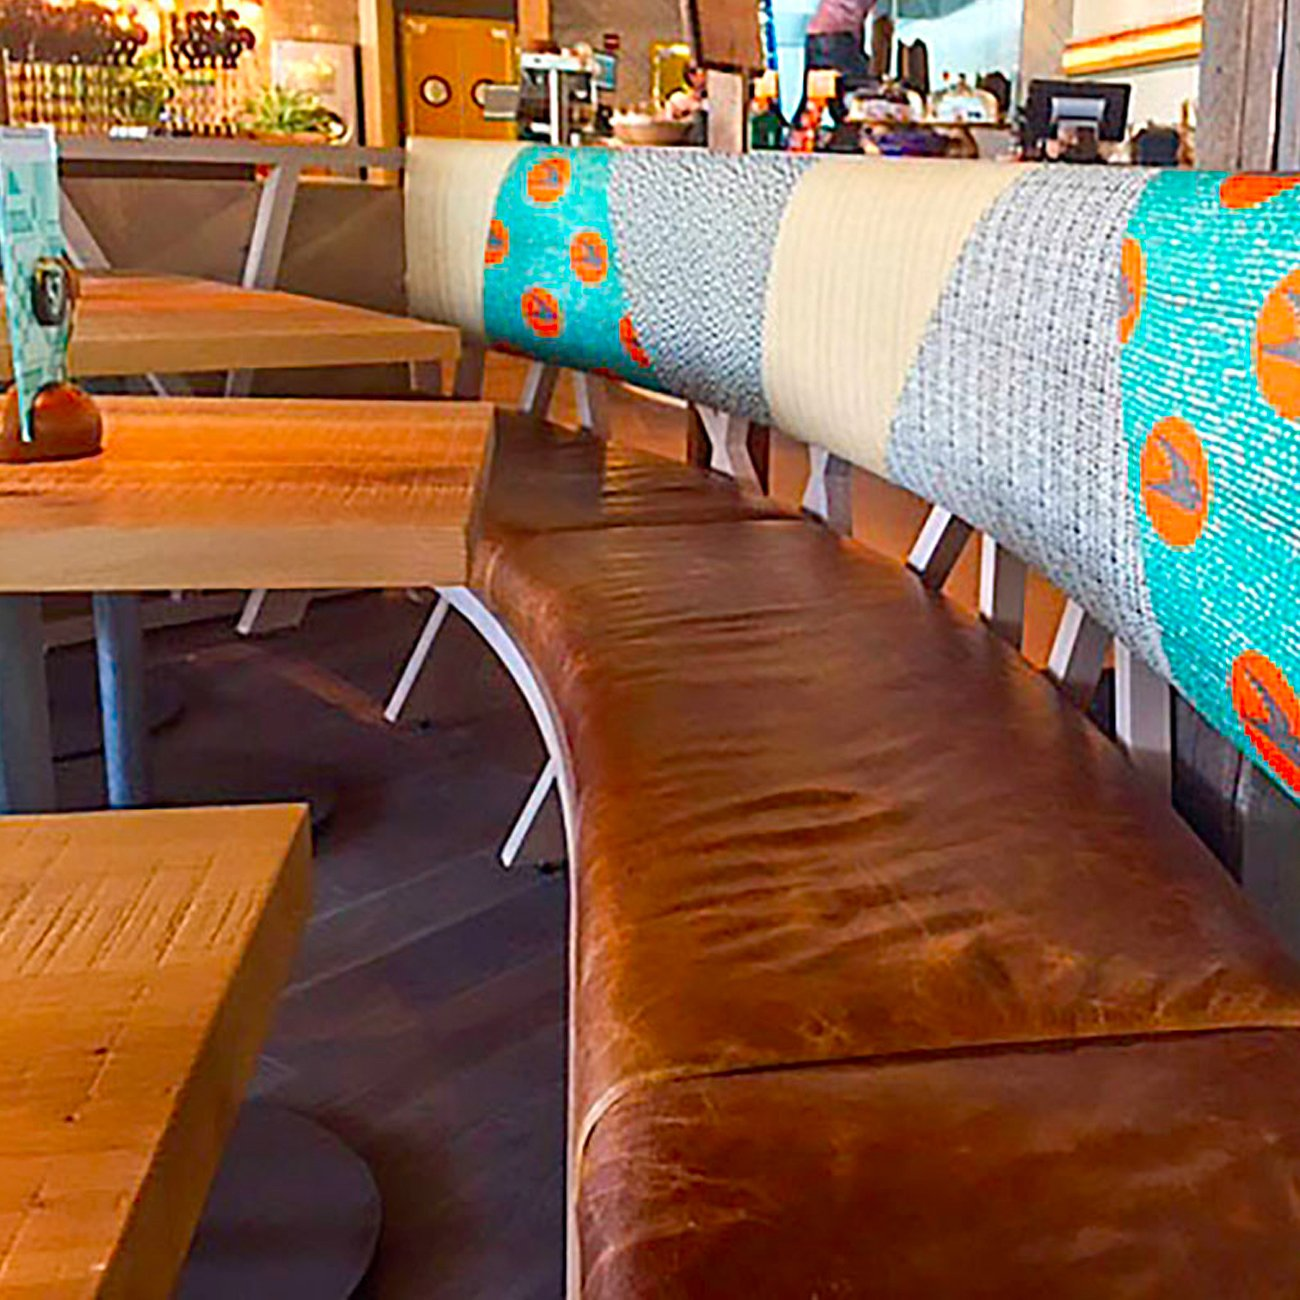 Nando's Peri Peri Chicken Restaurant furniture